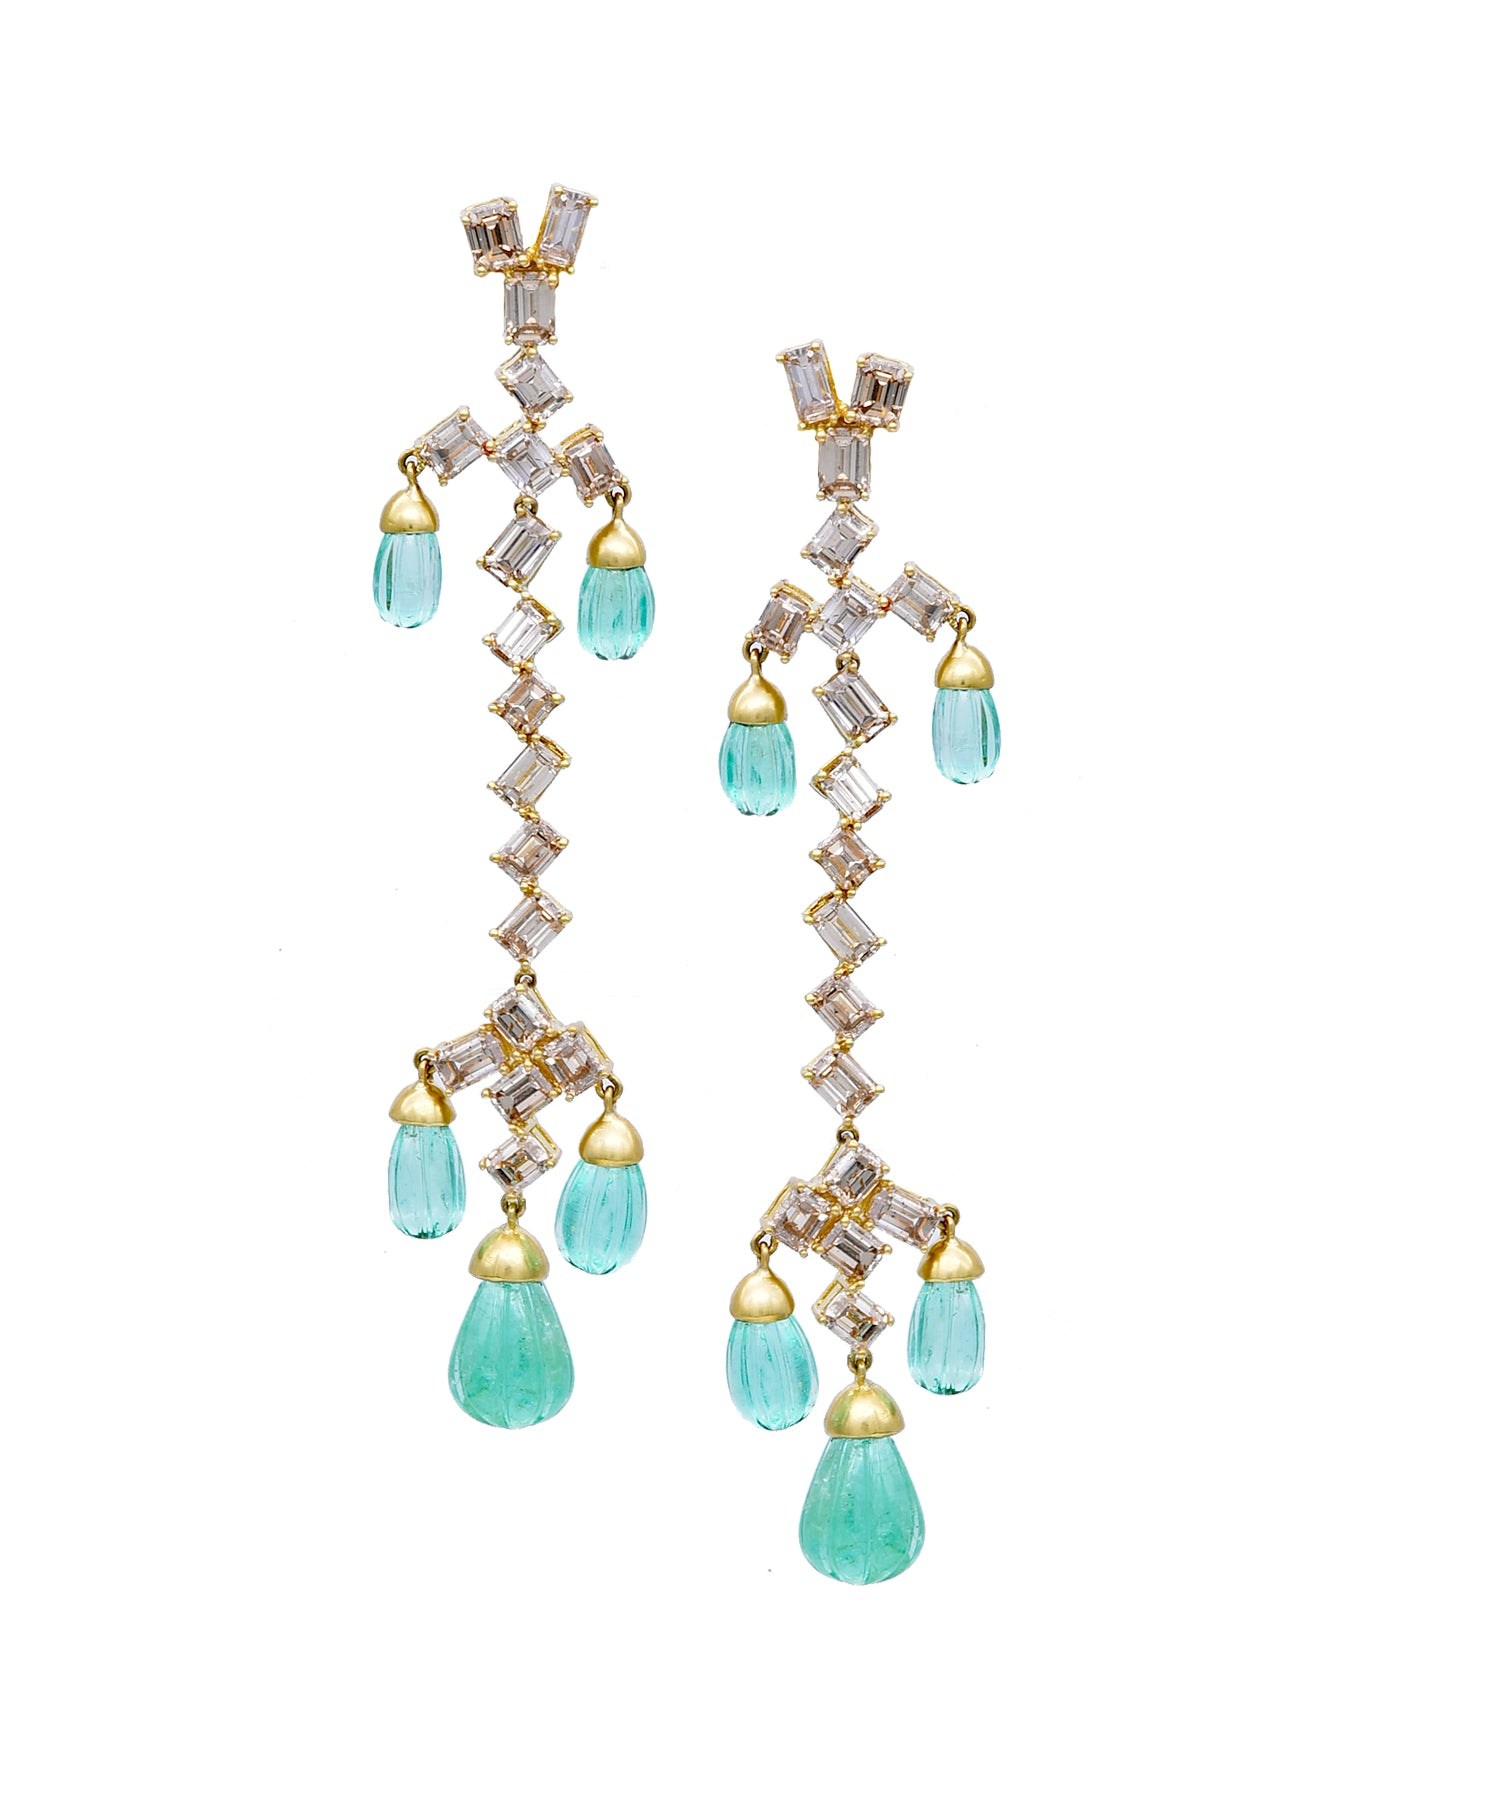 Baguette diamond and emerald earrings